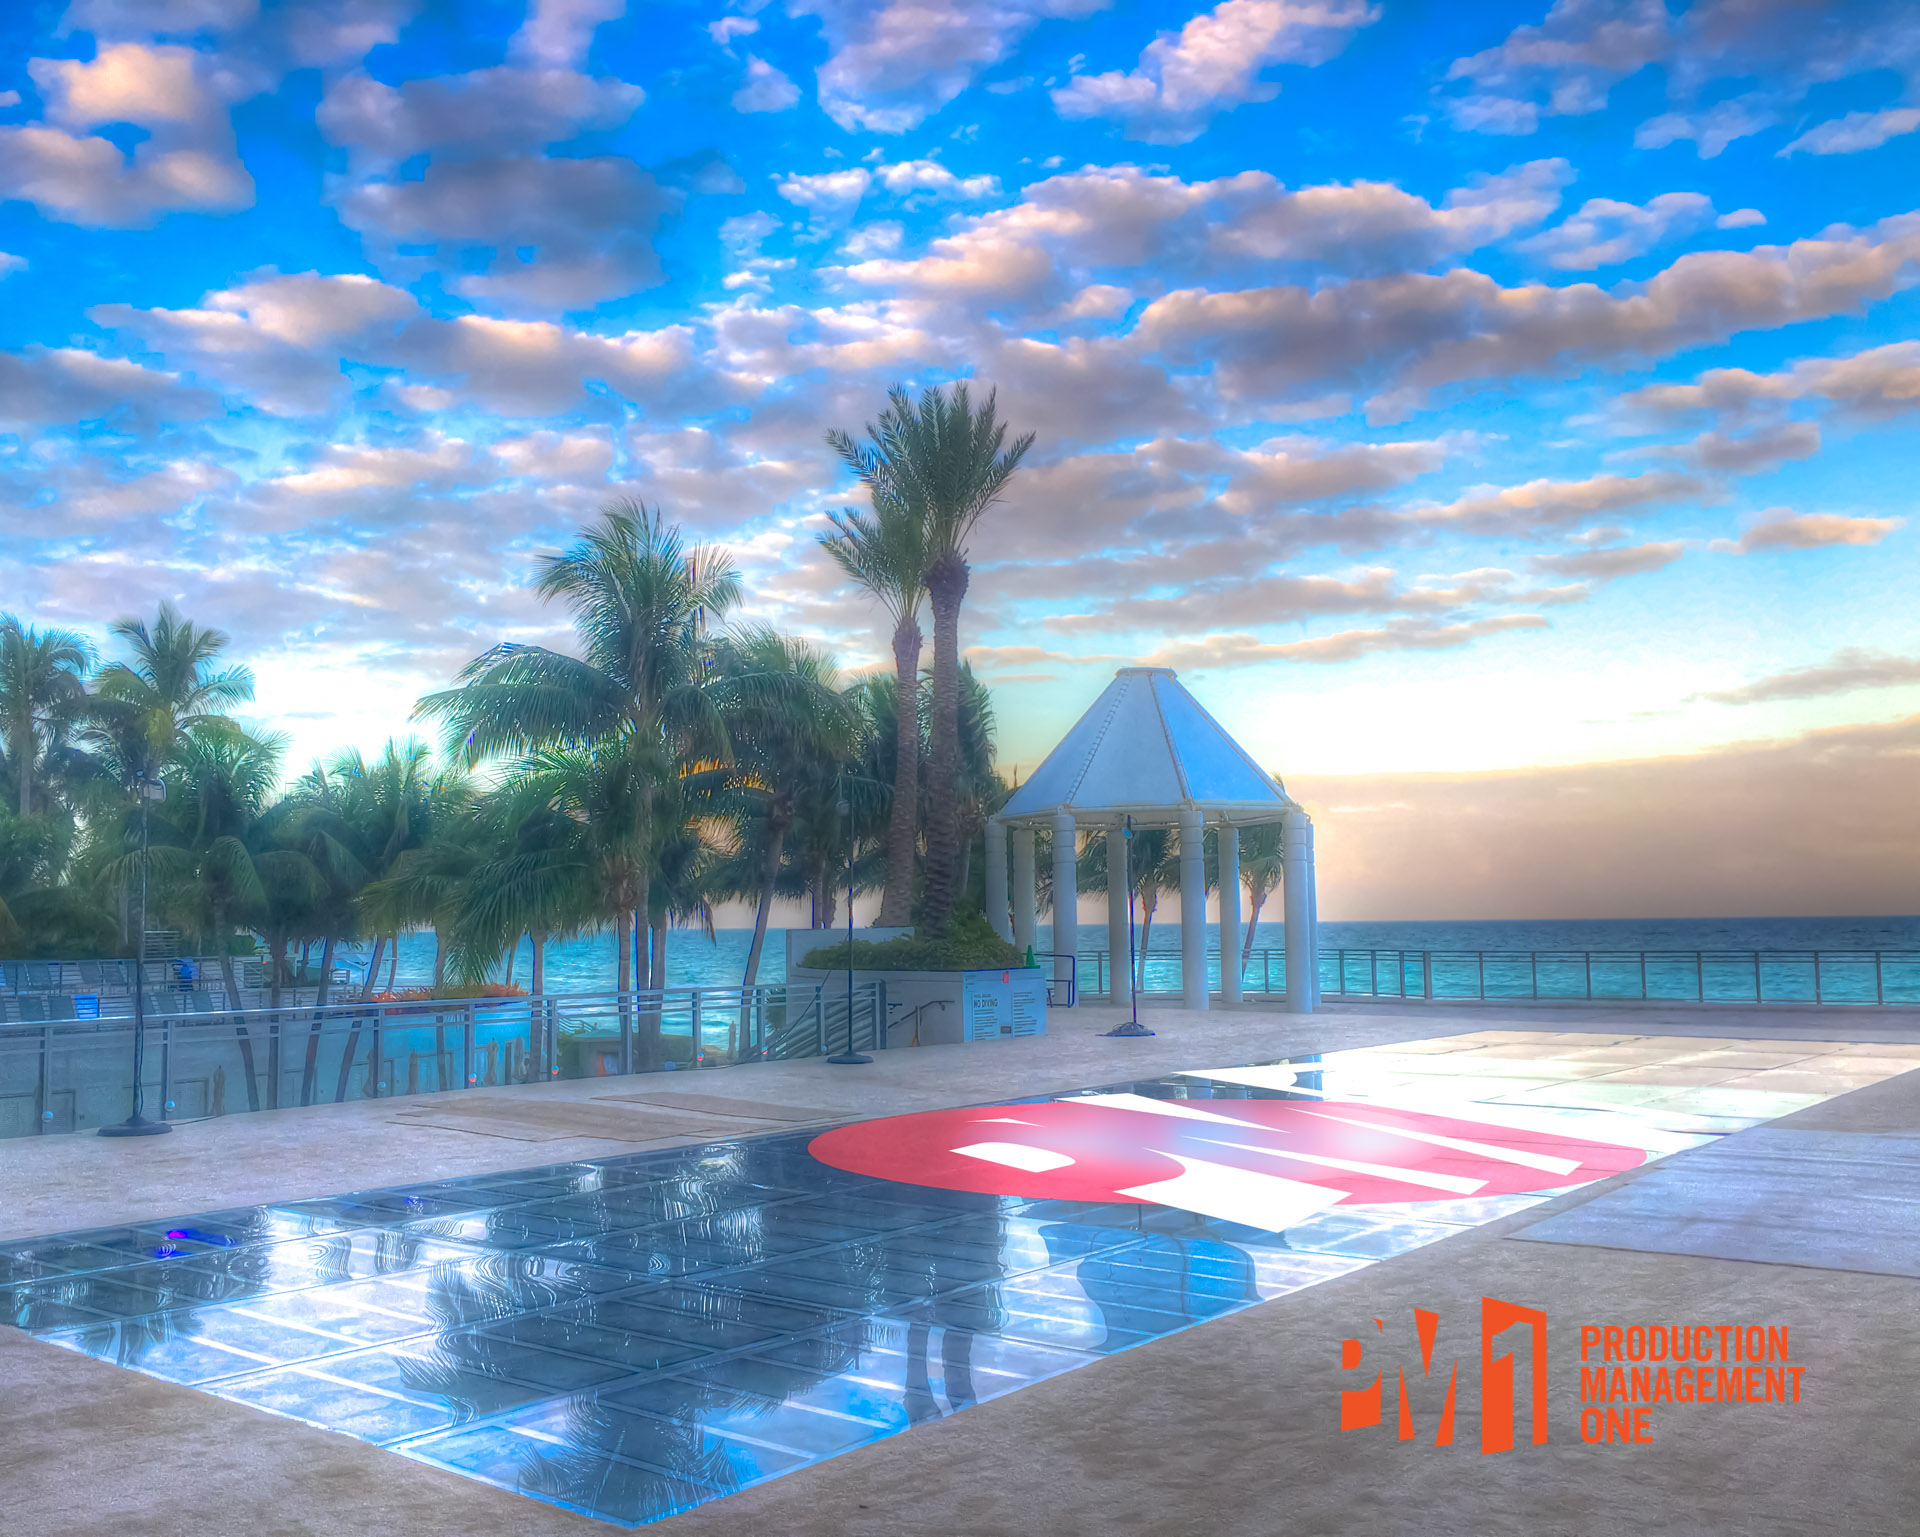 Fort Lauderdale Trade Show Pool Cover